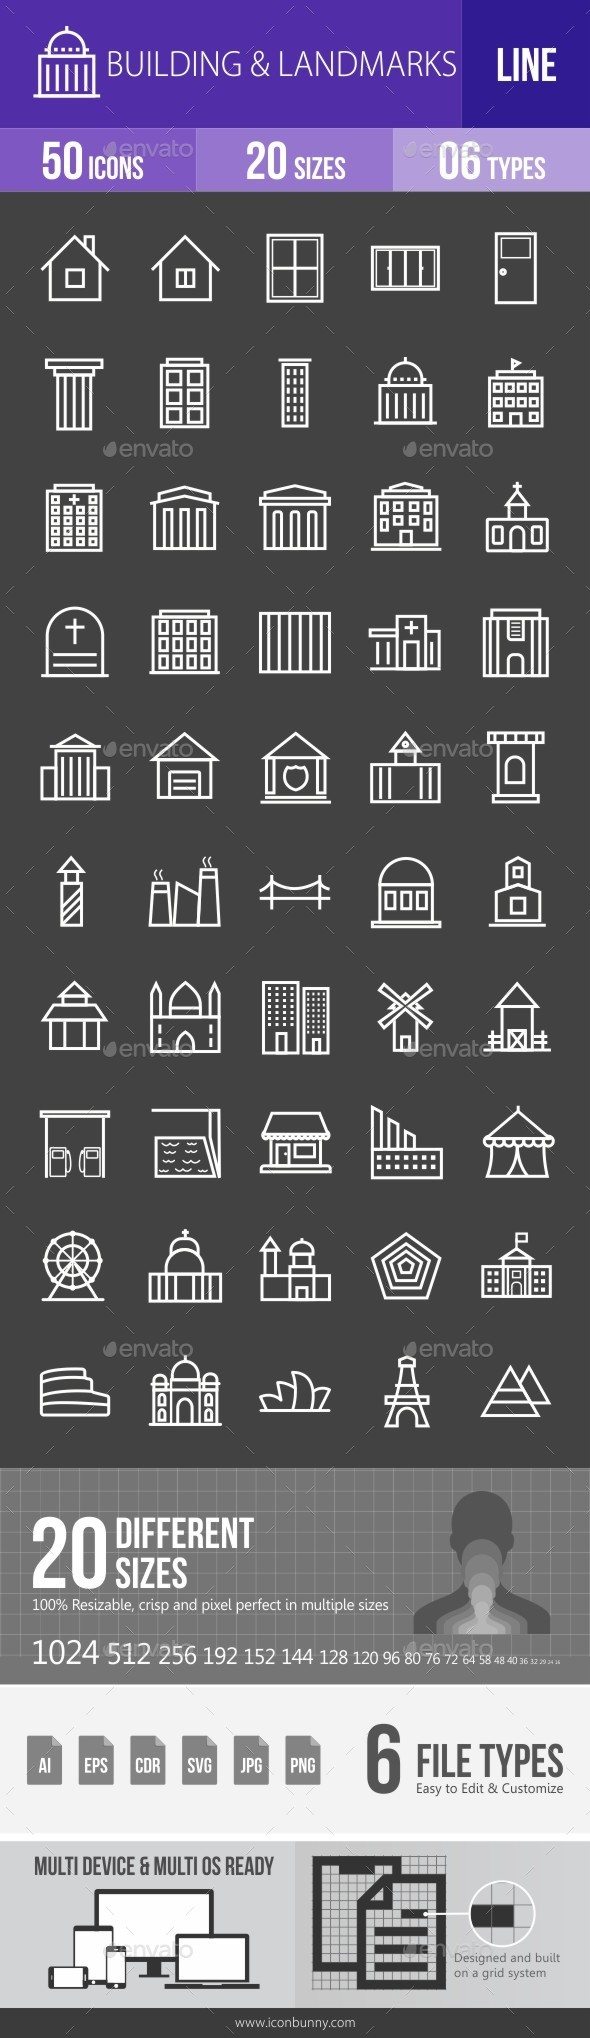 Buildings & Landmarks Line Inverted Icons - Icons